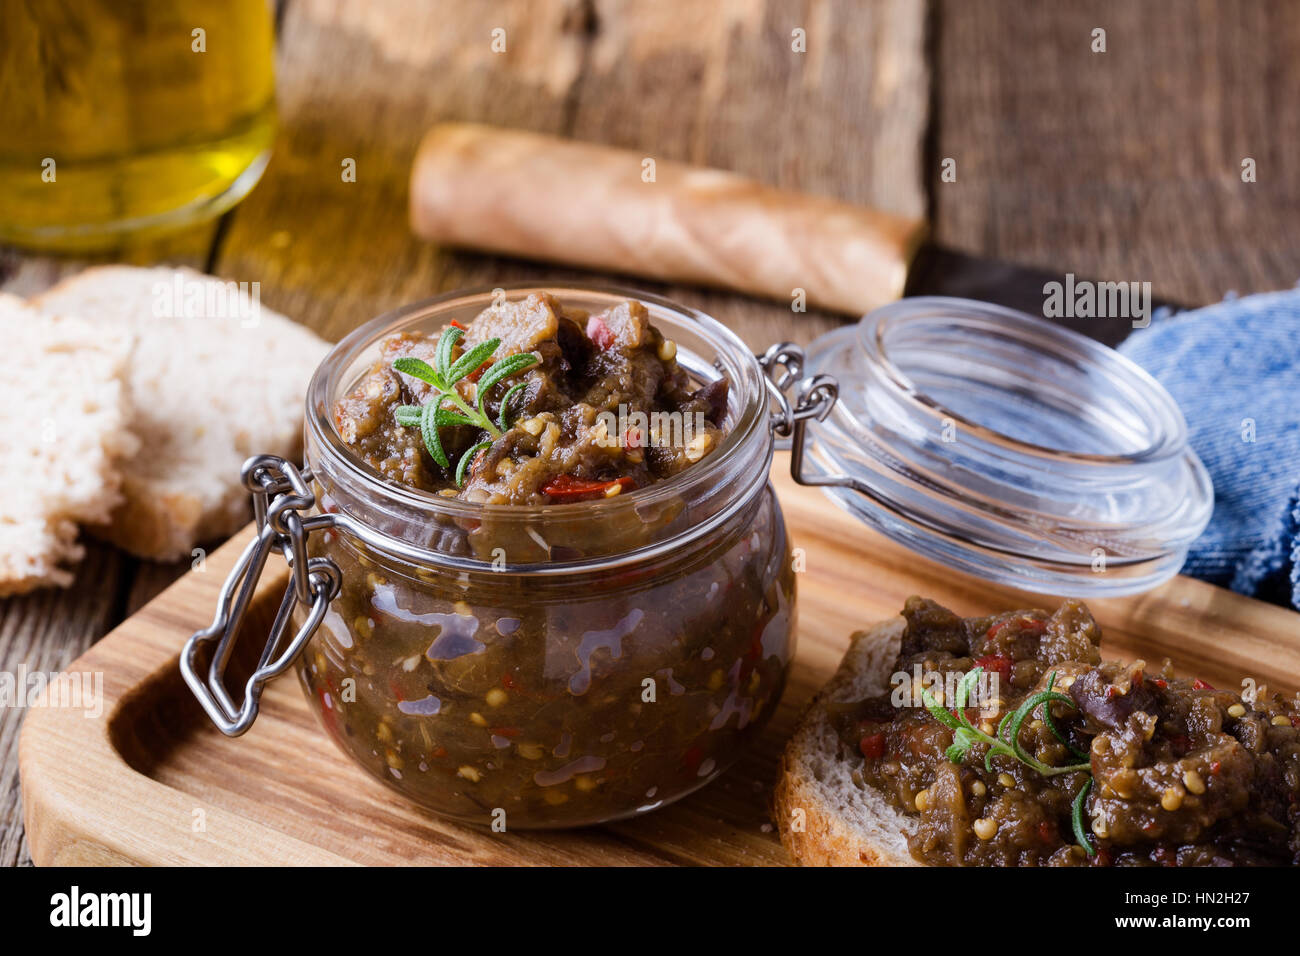 Homemade pate of eggplant. Paste in glass jar on rustic wooden table. Useful and healthy vegetarian food - Stock Image